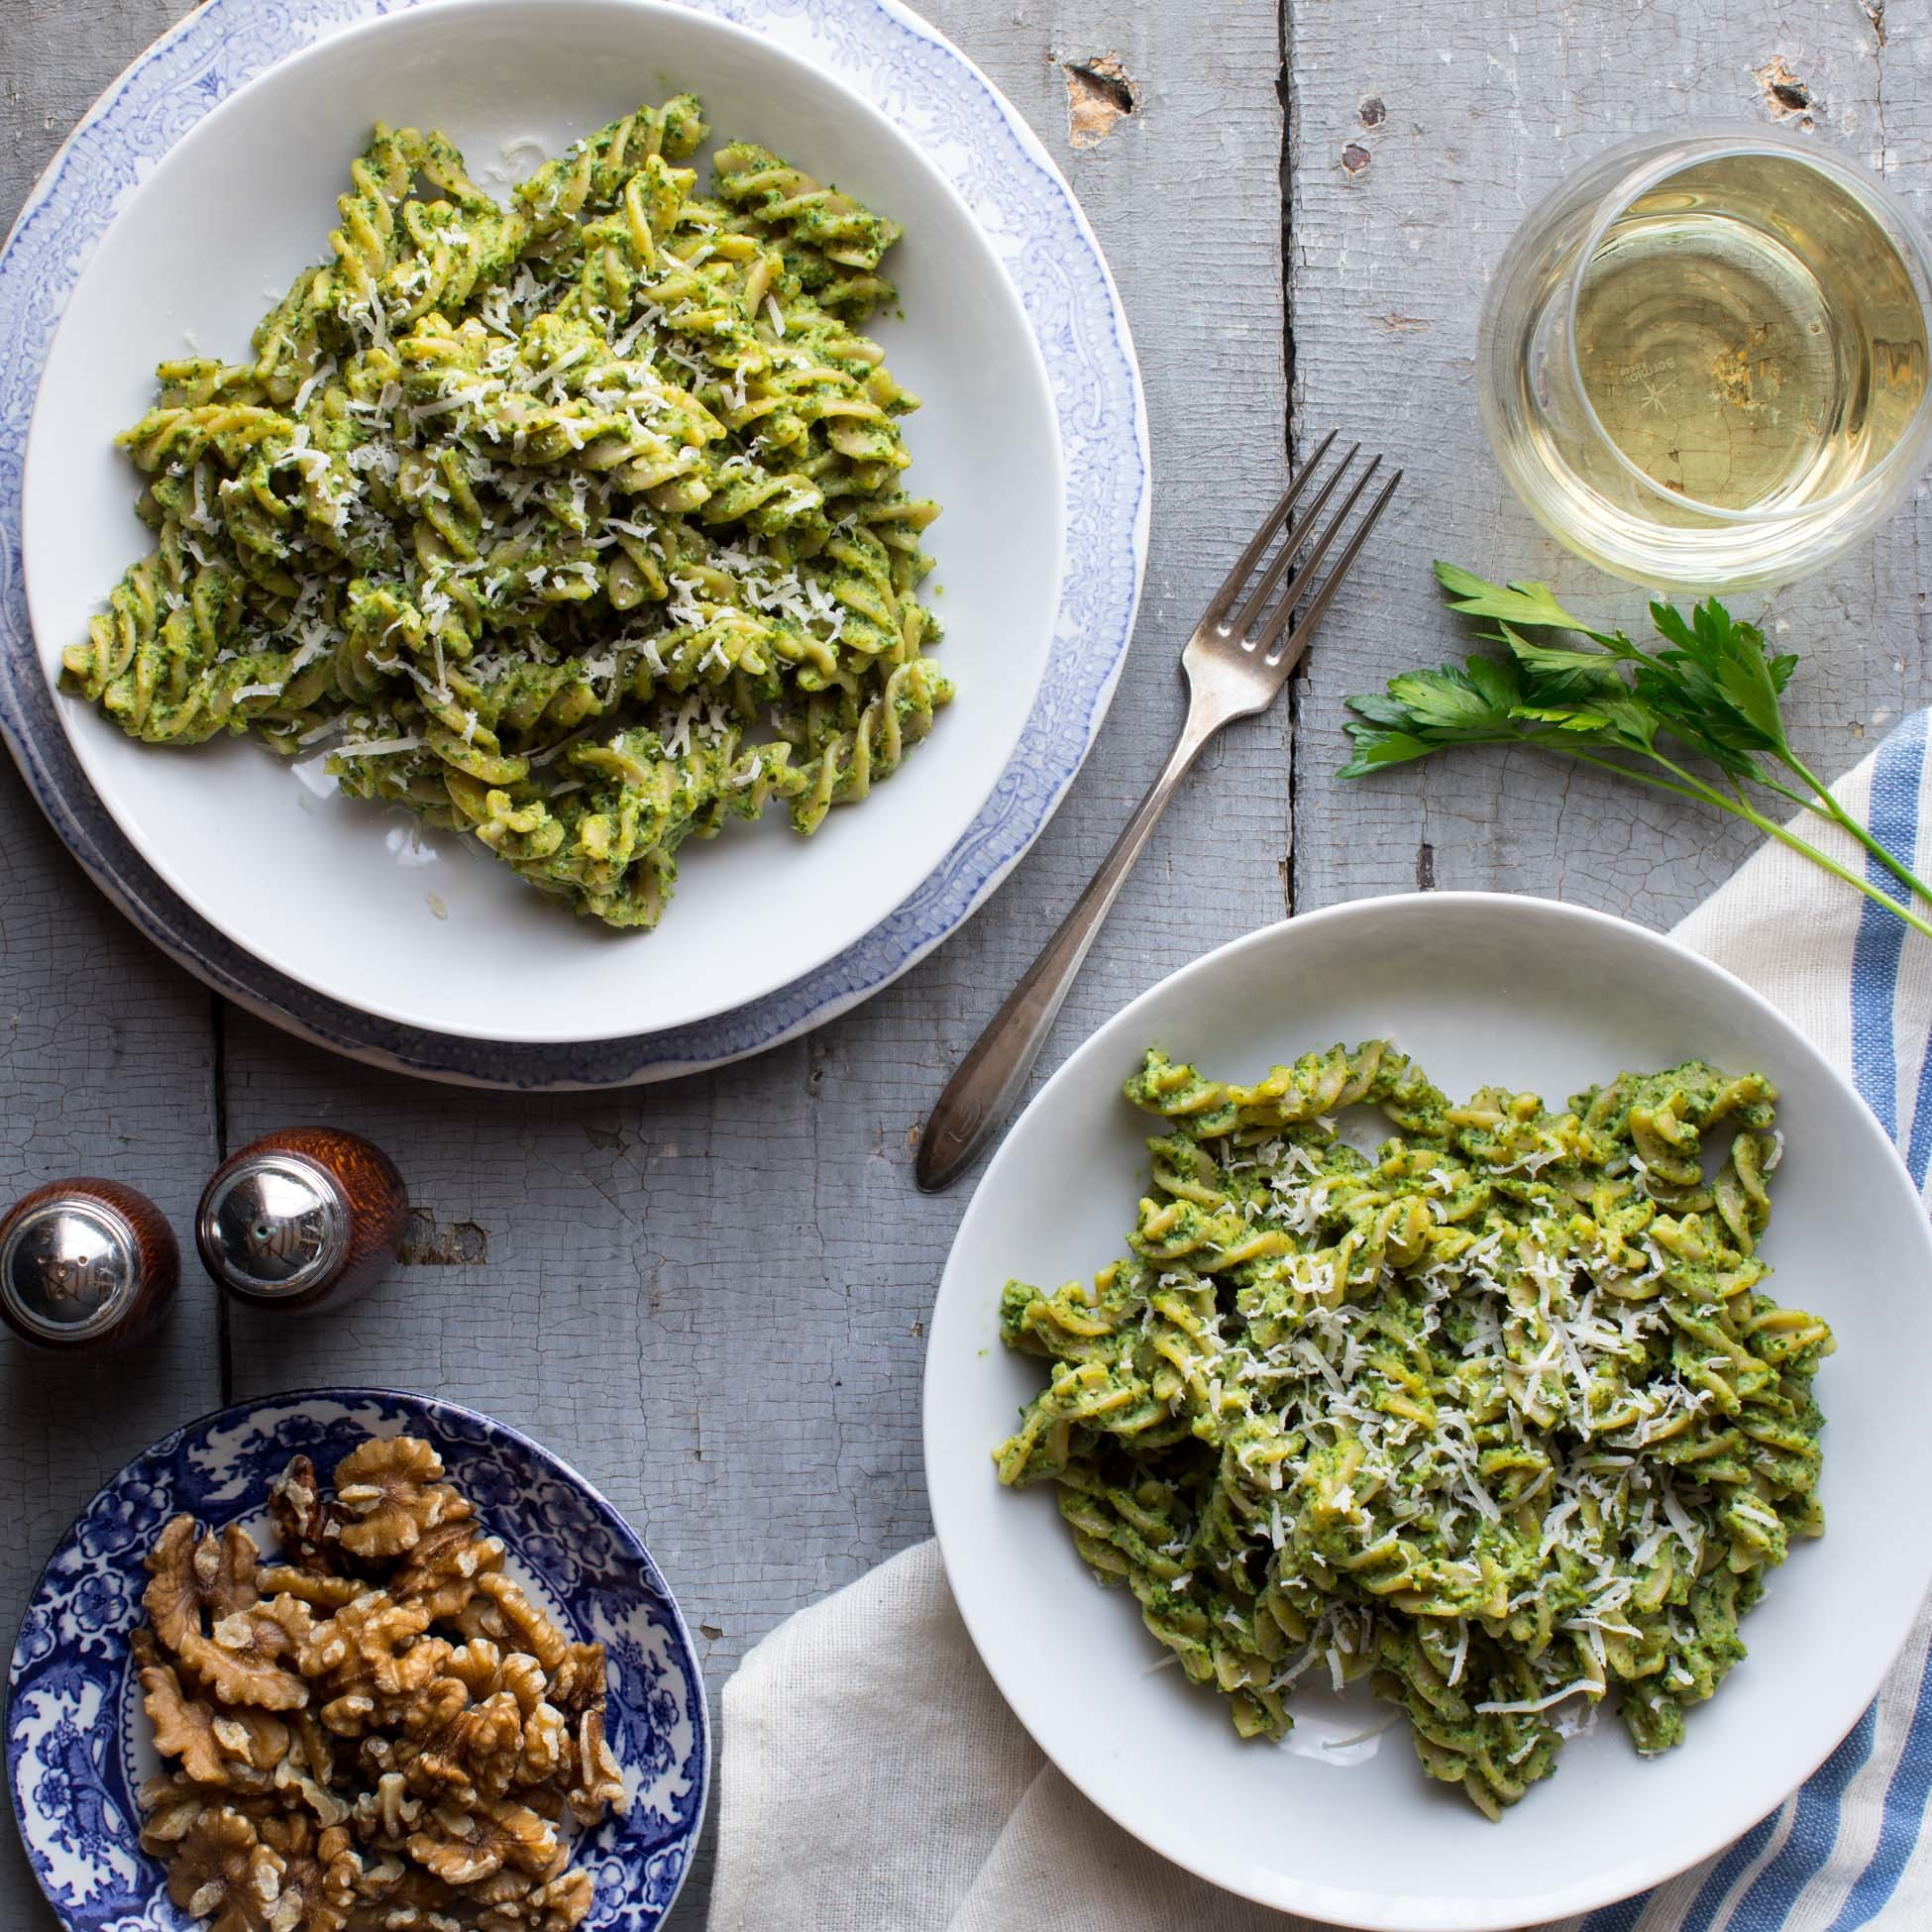 Pasta with Parsley-Walnut Pesto